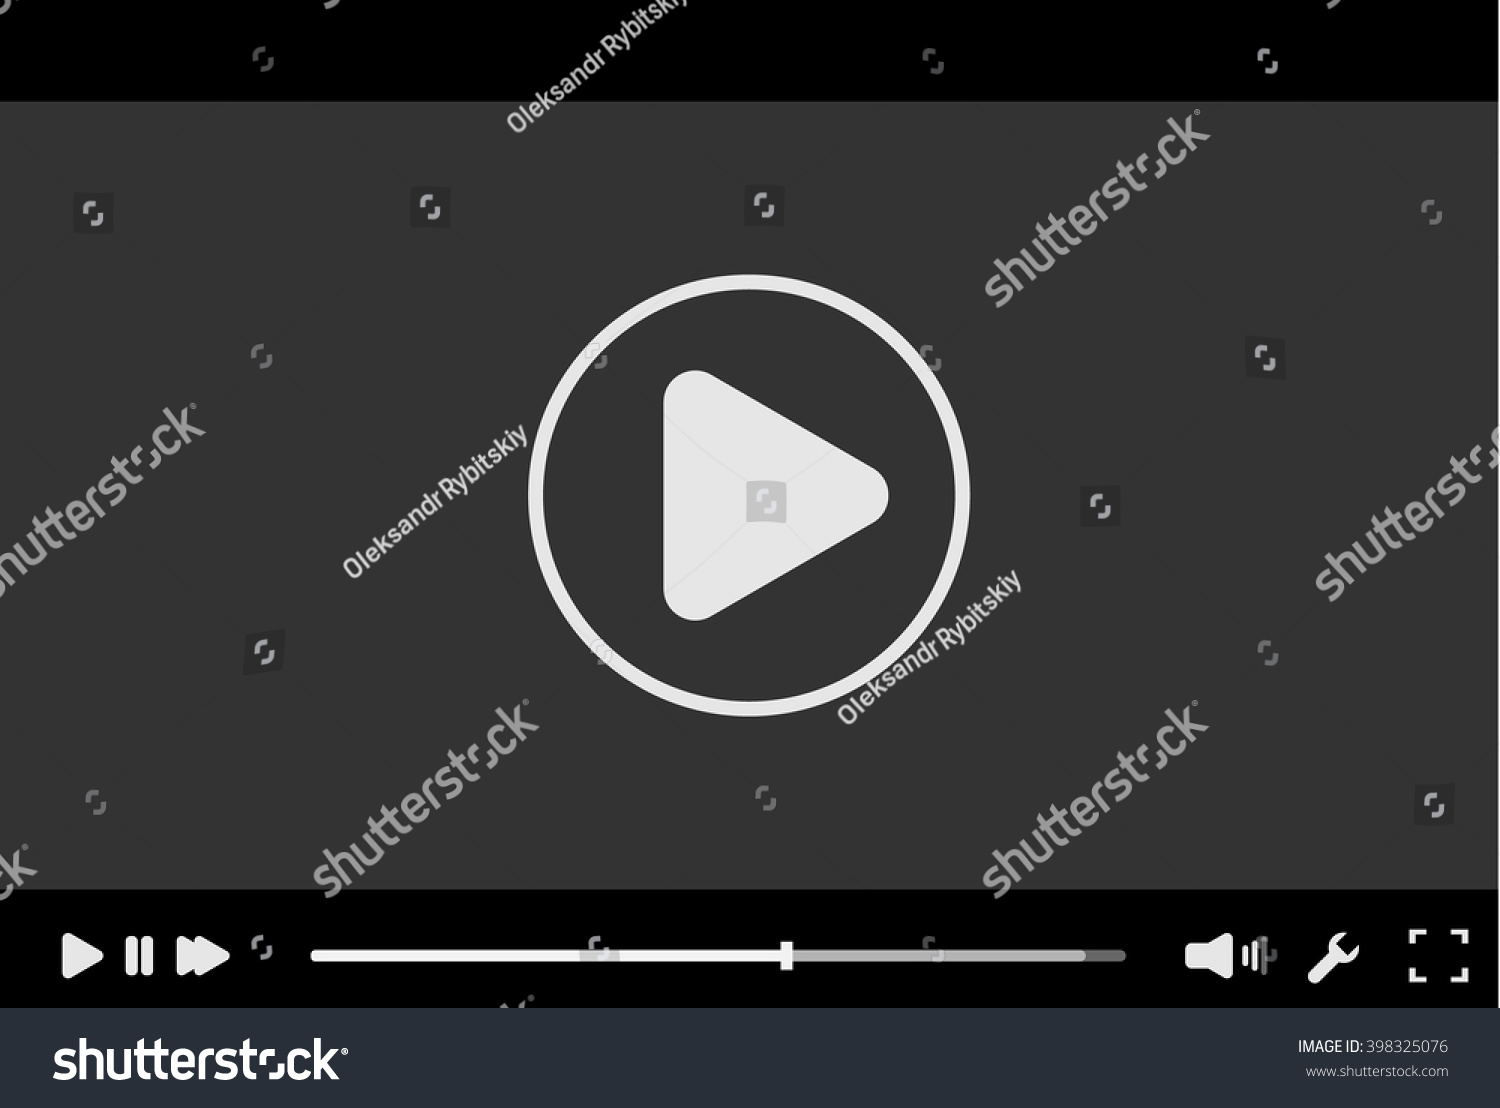 Video player interface template vector. Trendy minimal flash stock.